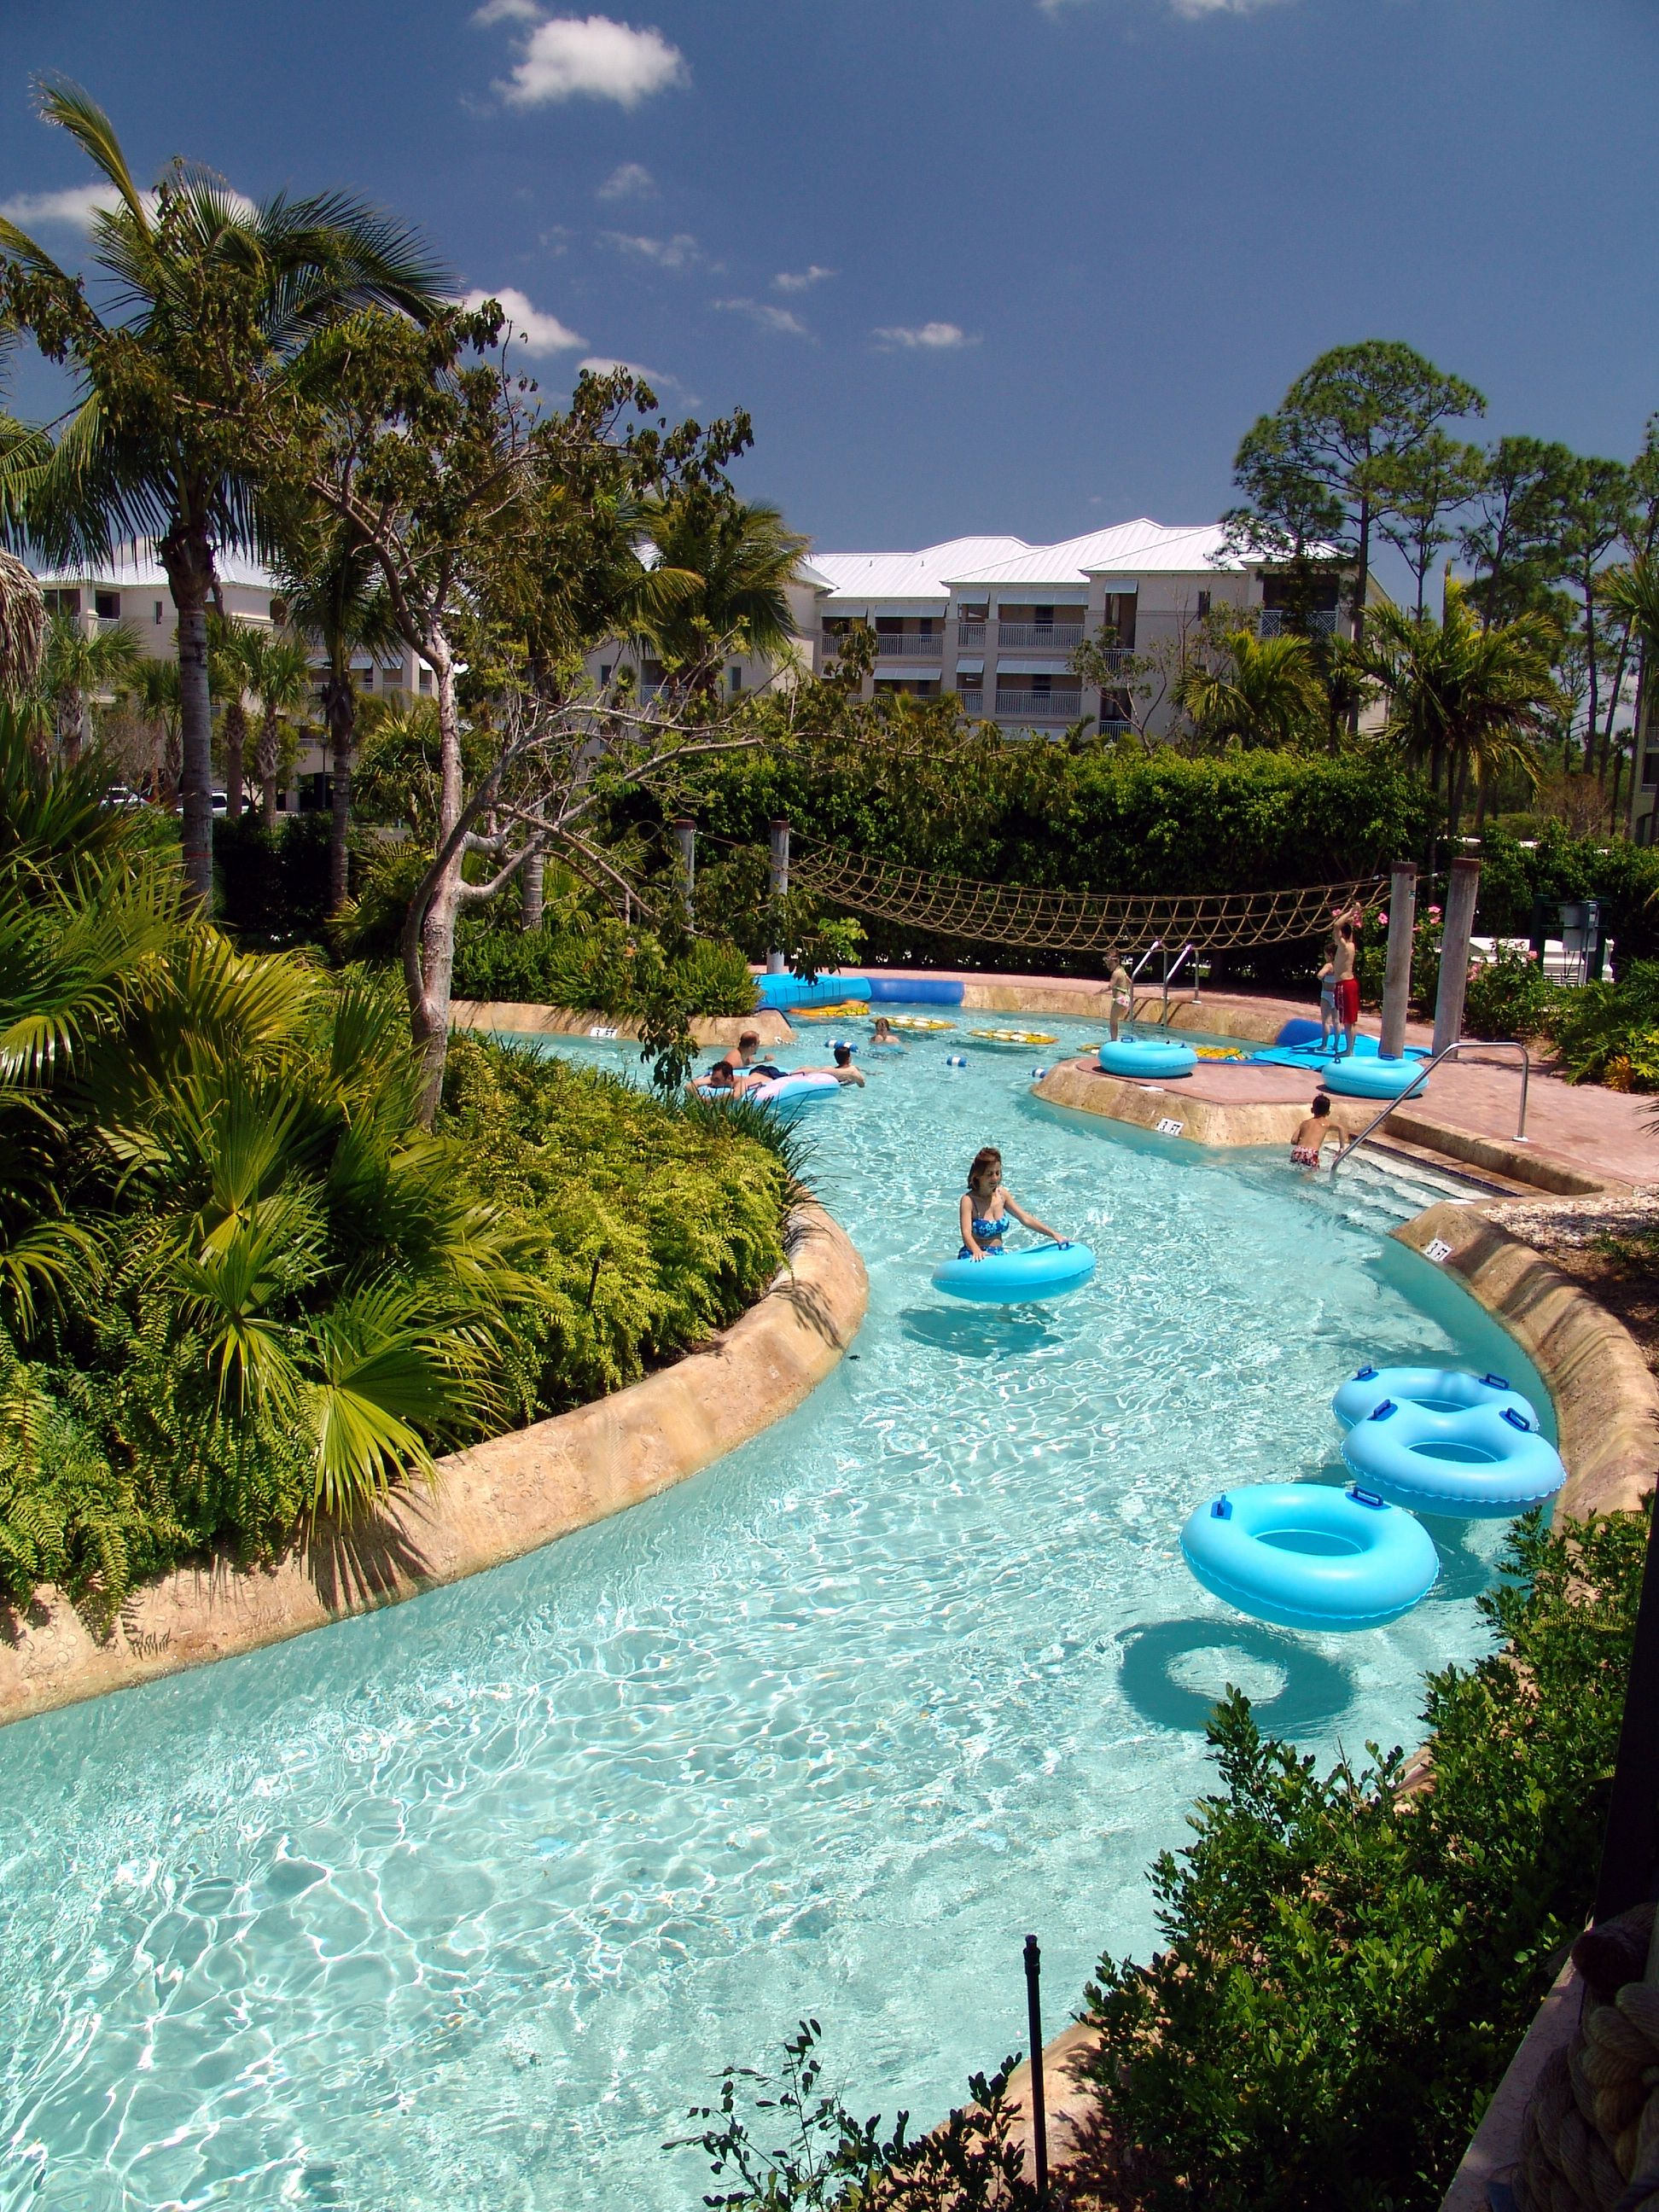 Beach Water Resorts Lazy Rivers Fort Myers Florida